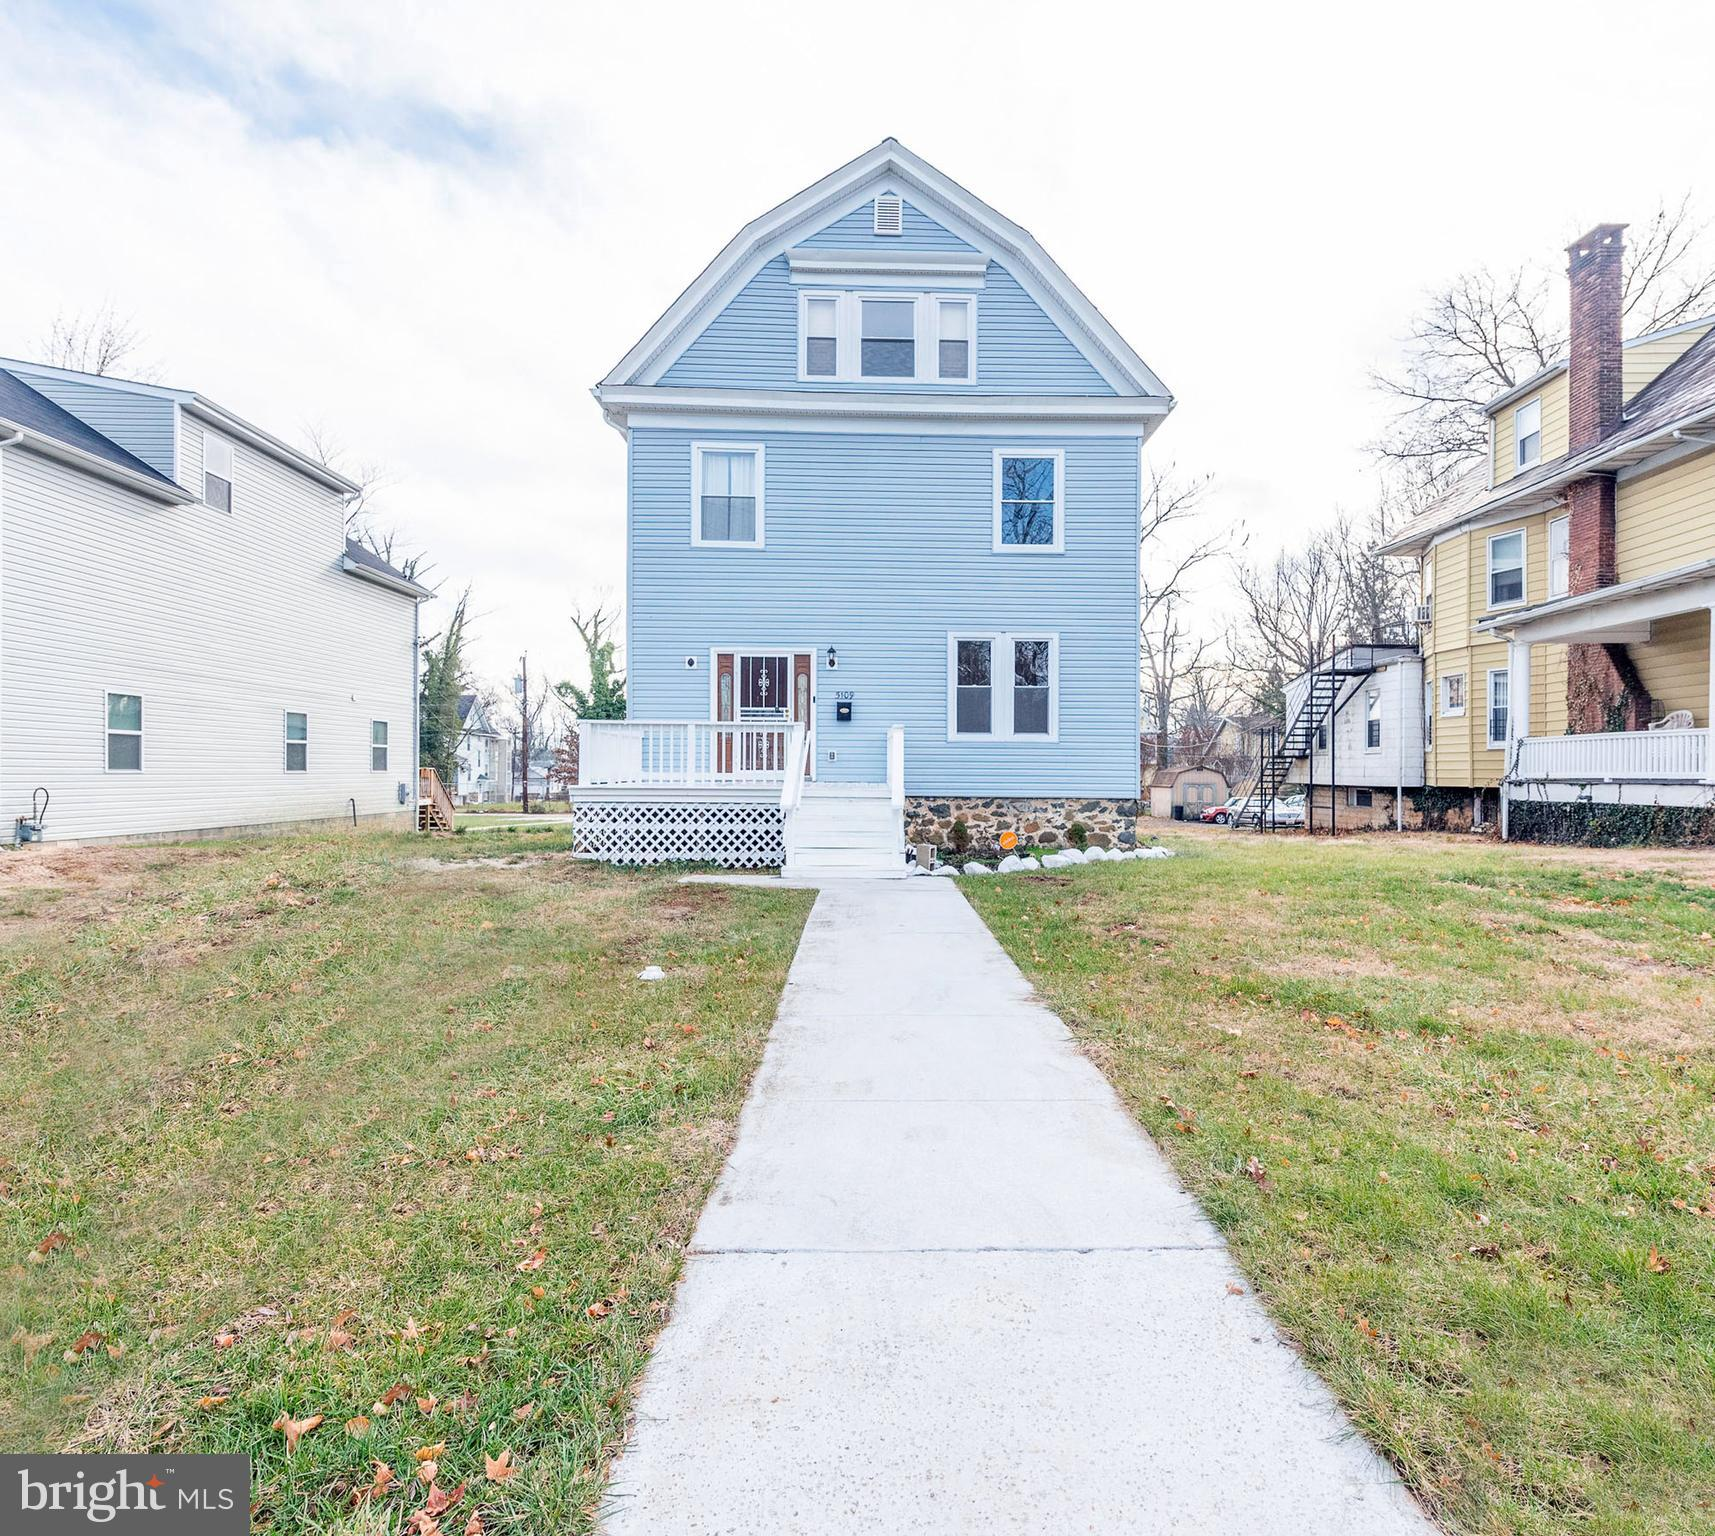 5109 GWYNN OAK AVENUE, BALTIMORE, MD 21207